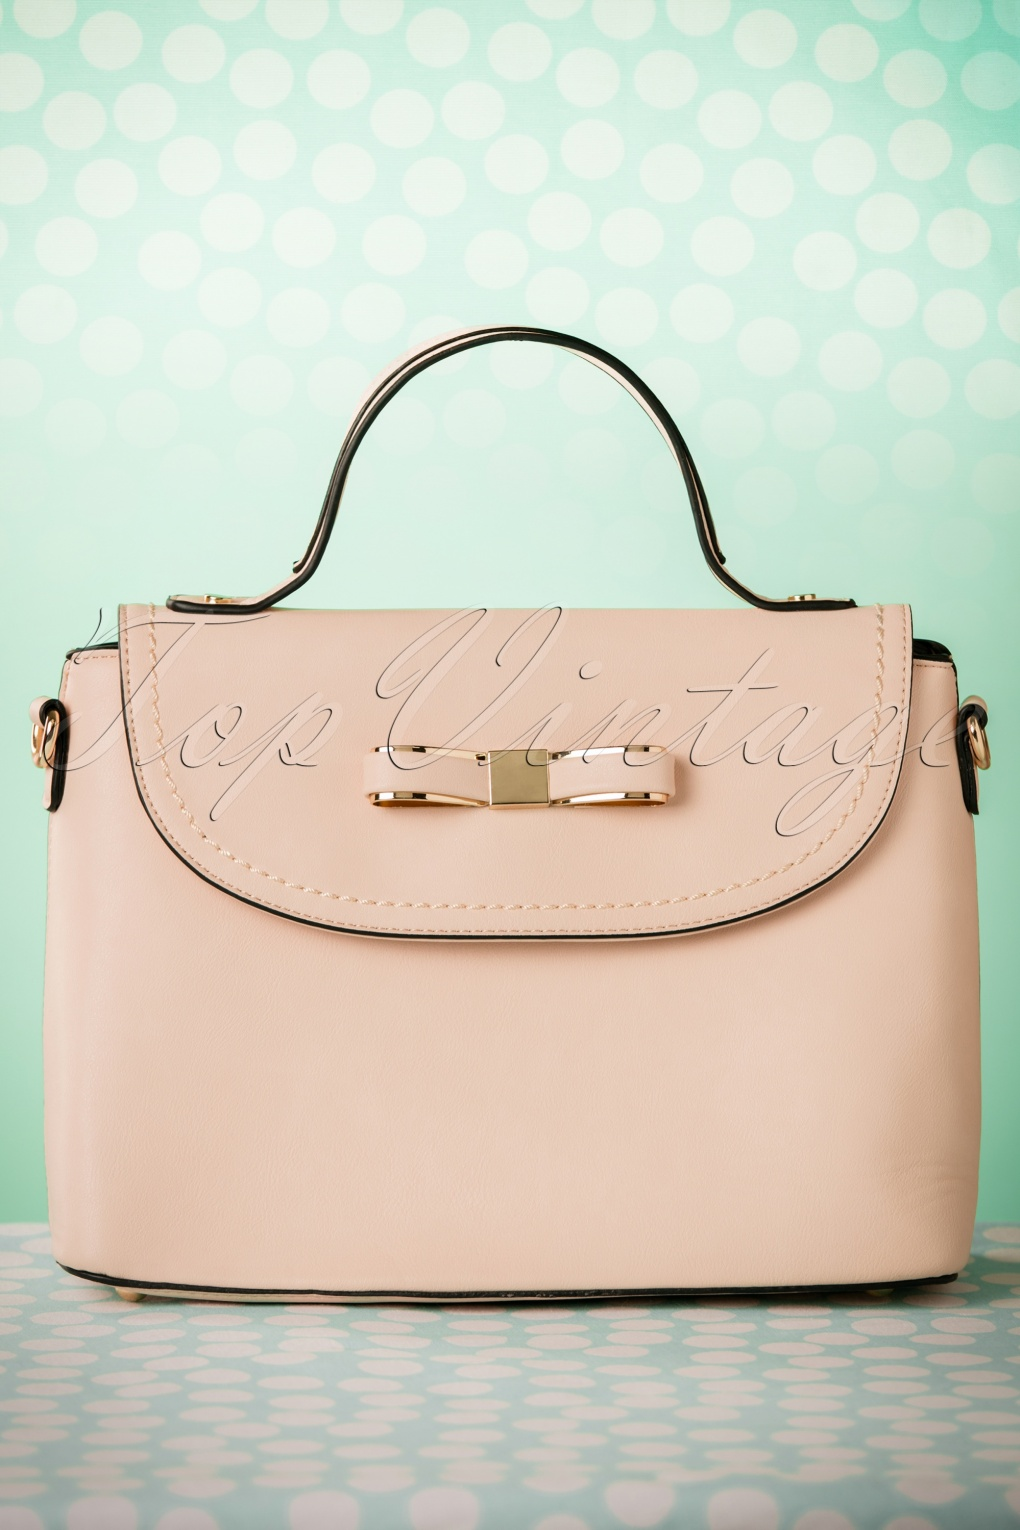 Retro Handbags, Purses, Wallets, Bags 50s Blair Bow Handbag in Pink £39.54 AT vintagedancer.com